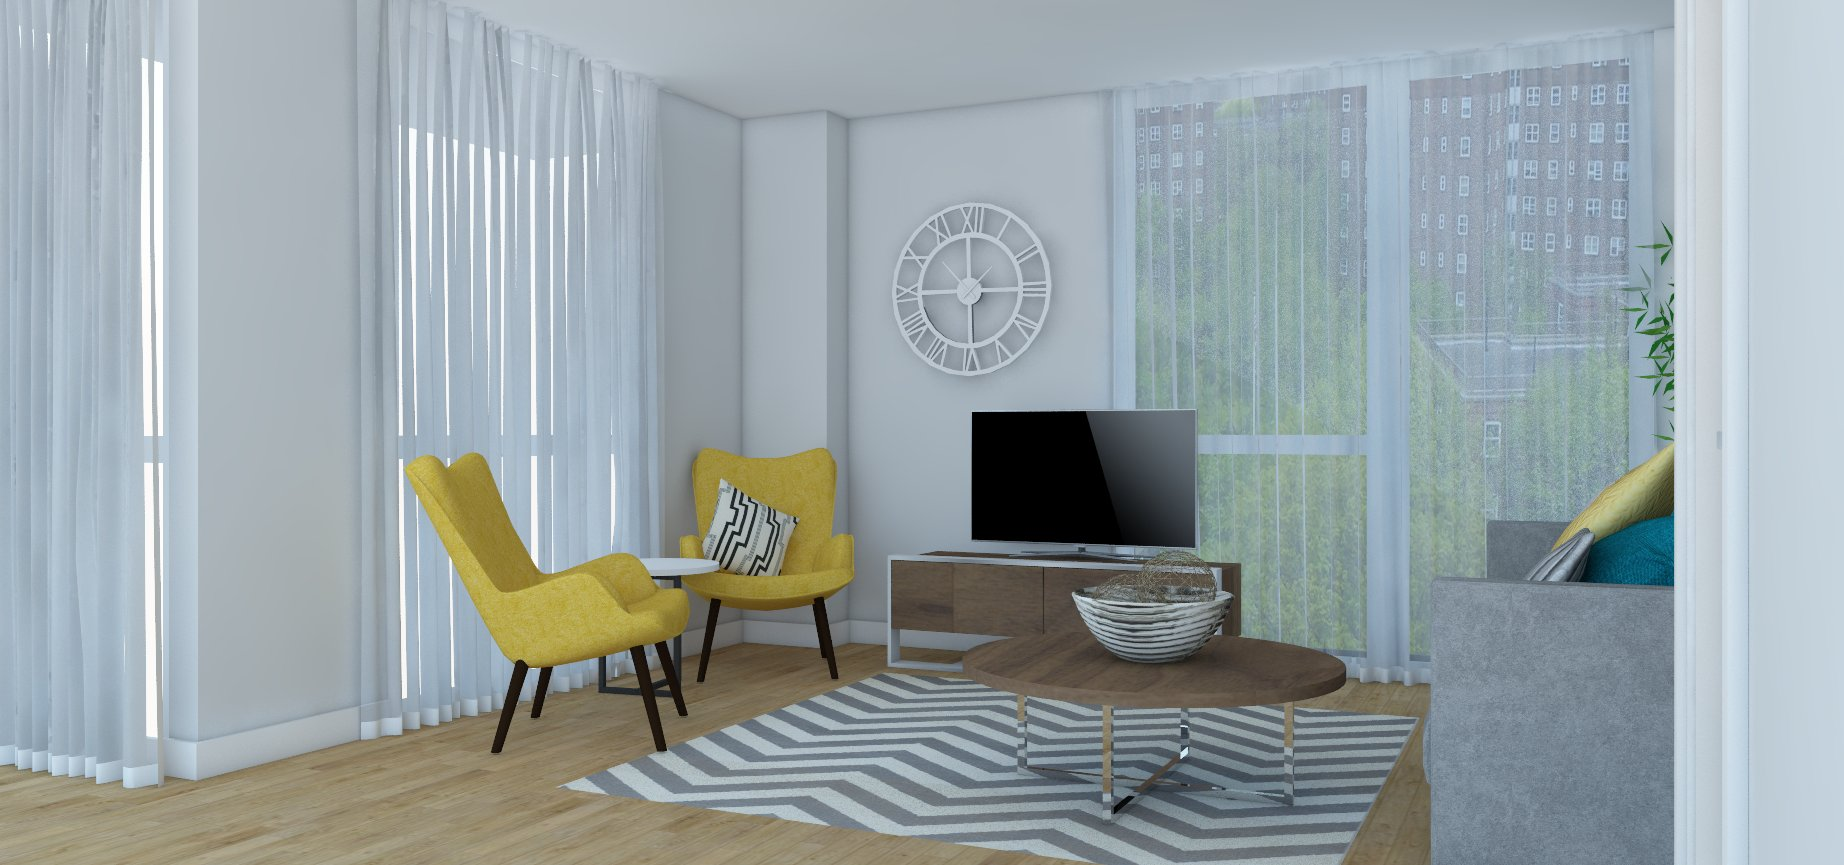 AKILIA_living room_2